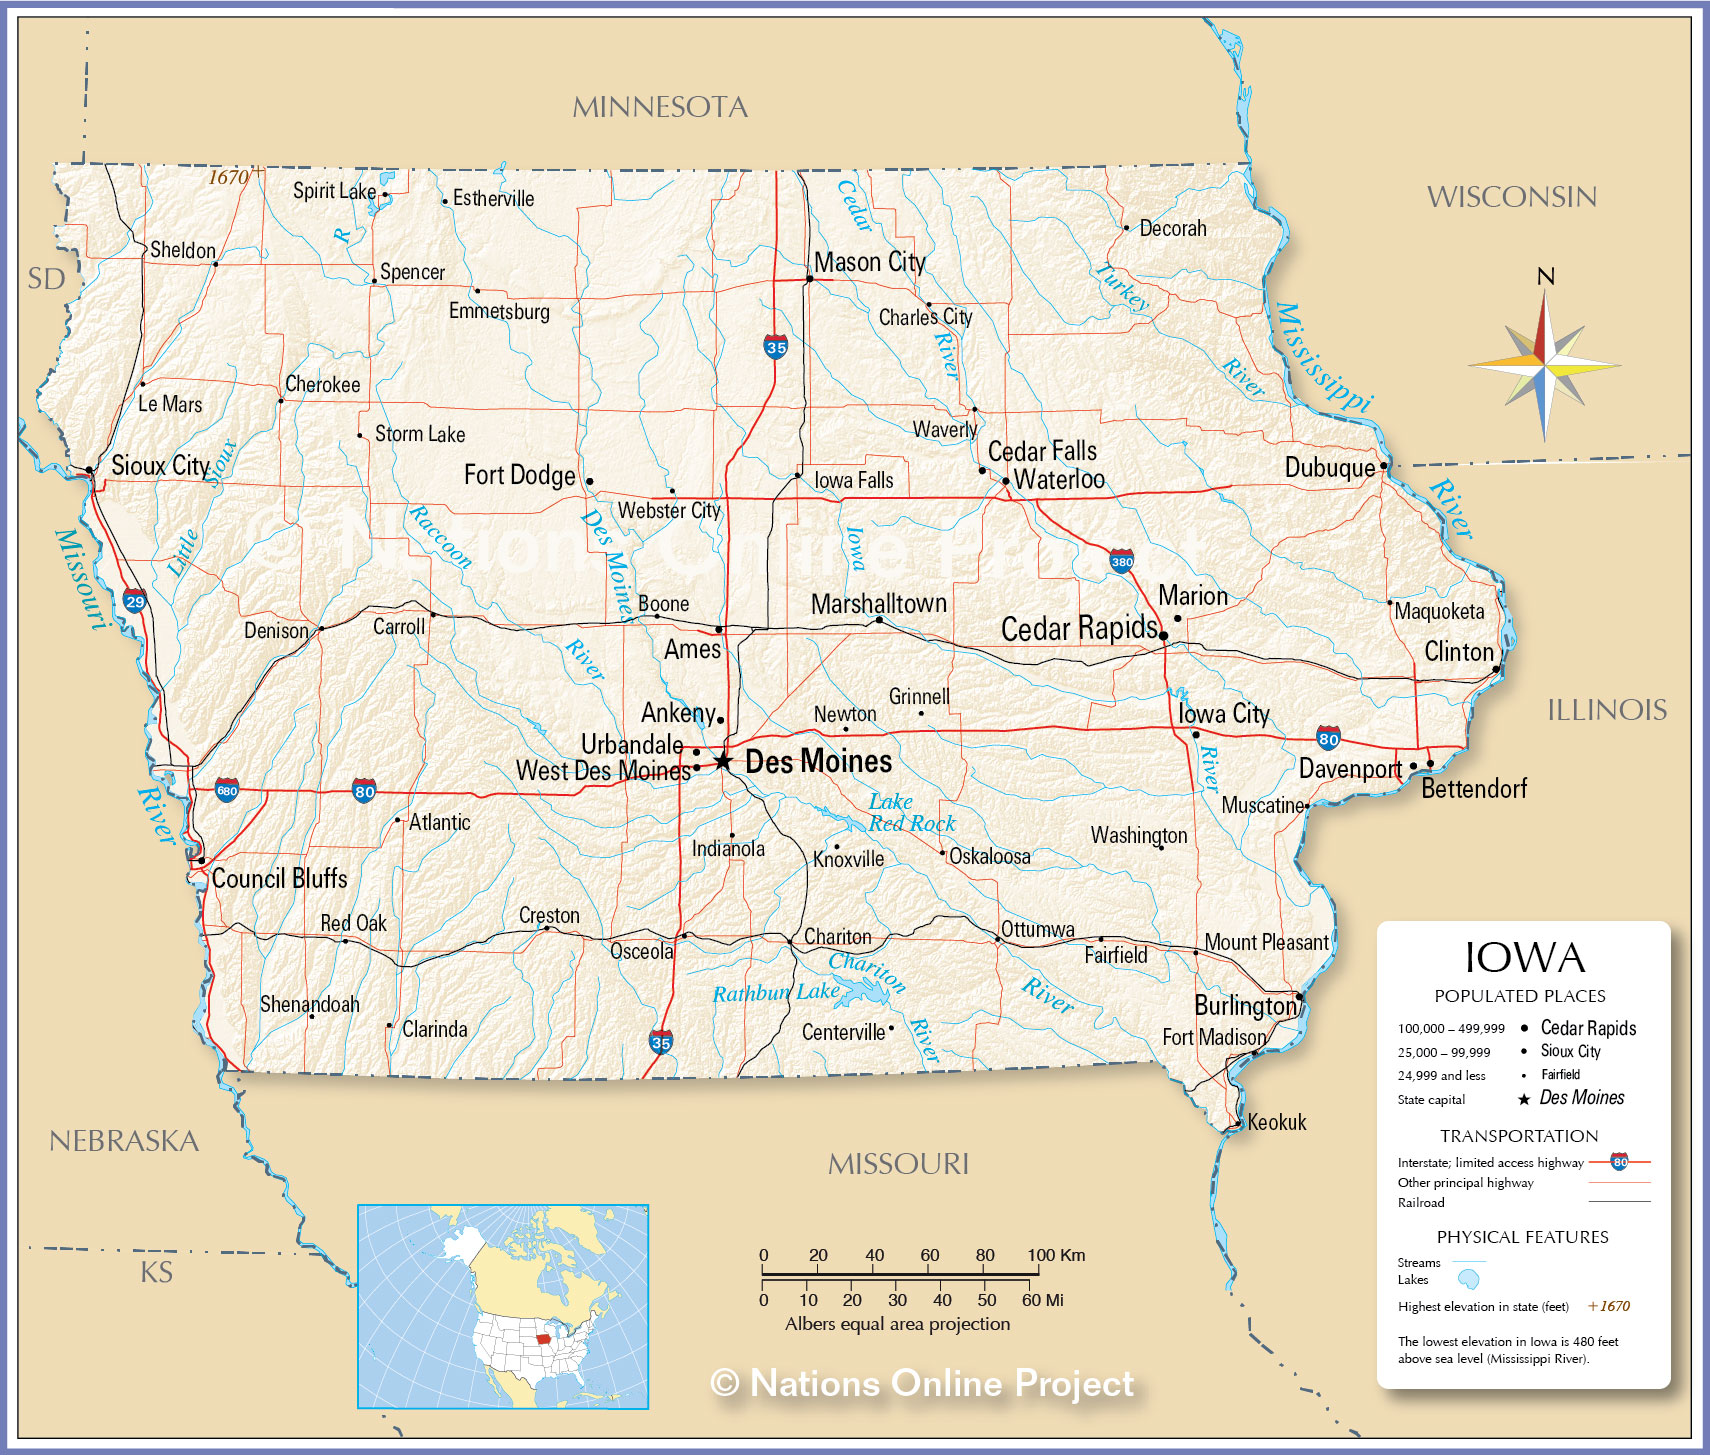 Reference Map Of Iowa USA Nations Online Project - United states map iowa